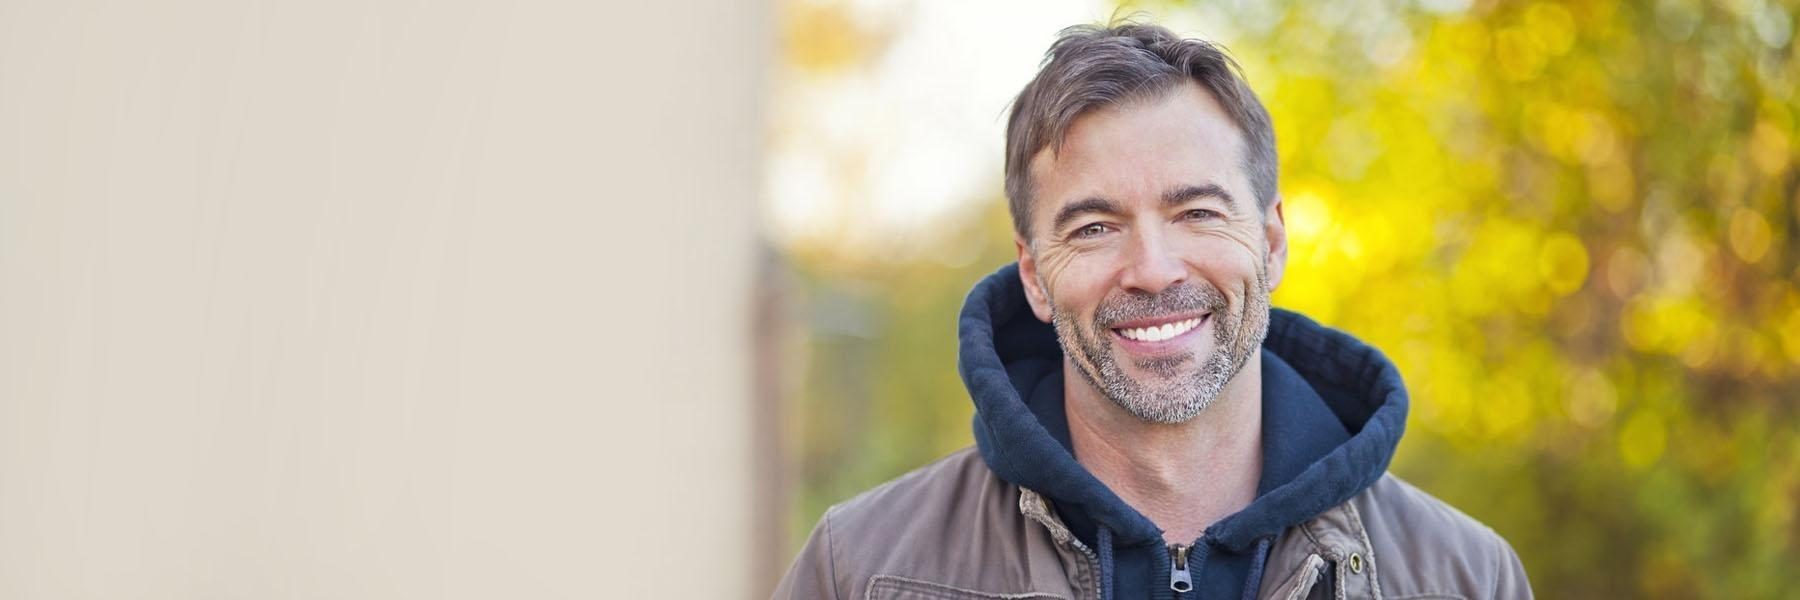 middle aged man smiling | dental implants madera ca